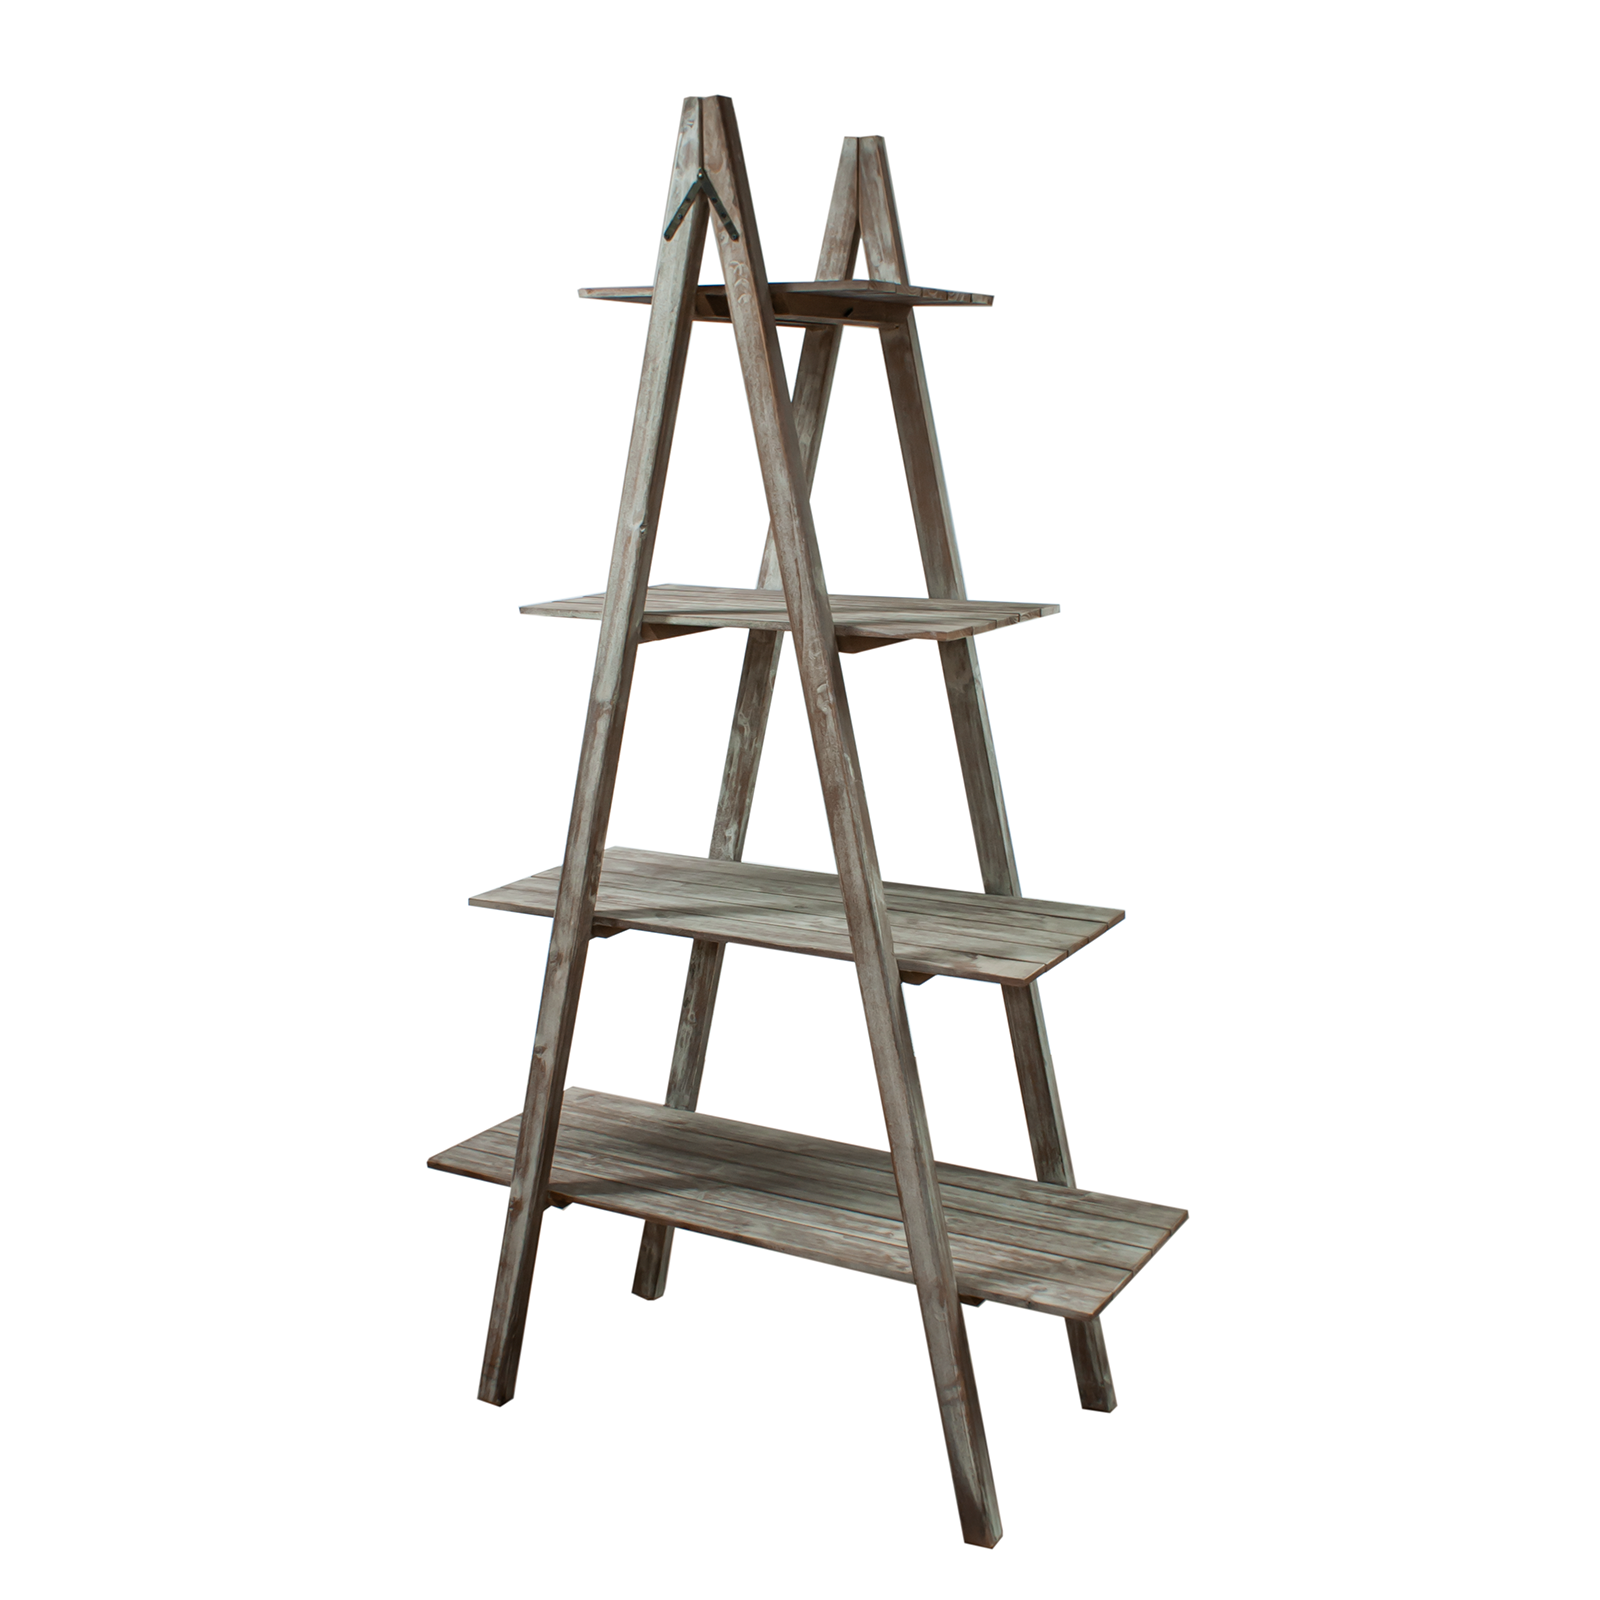 Ladder Shelving Double Sided 4 Tier Foldable Retail Shop Display Storage Di27